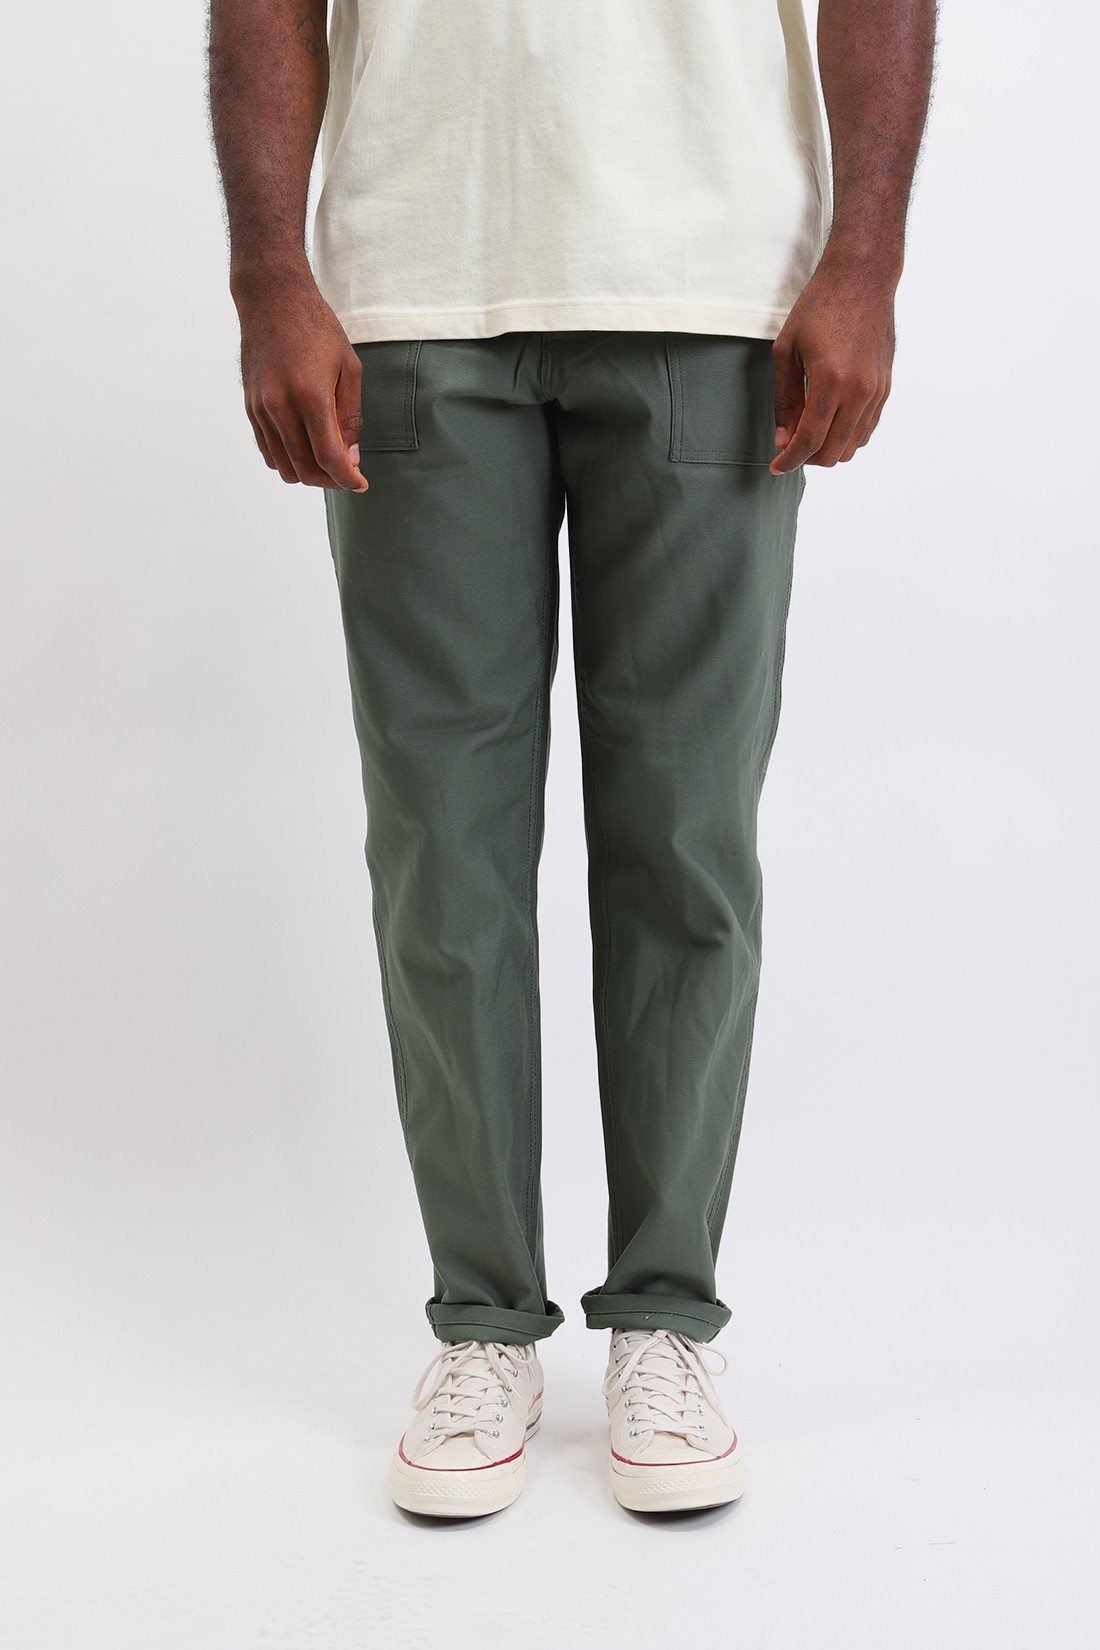 STAN RAY / Taper fatigue pant Olive